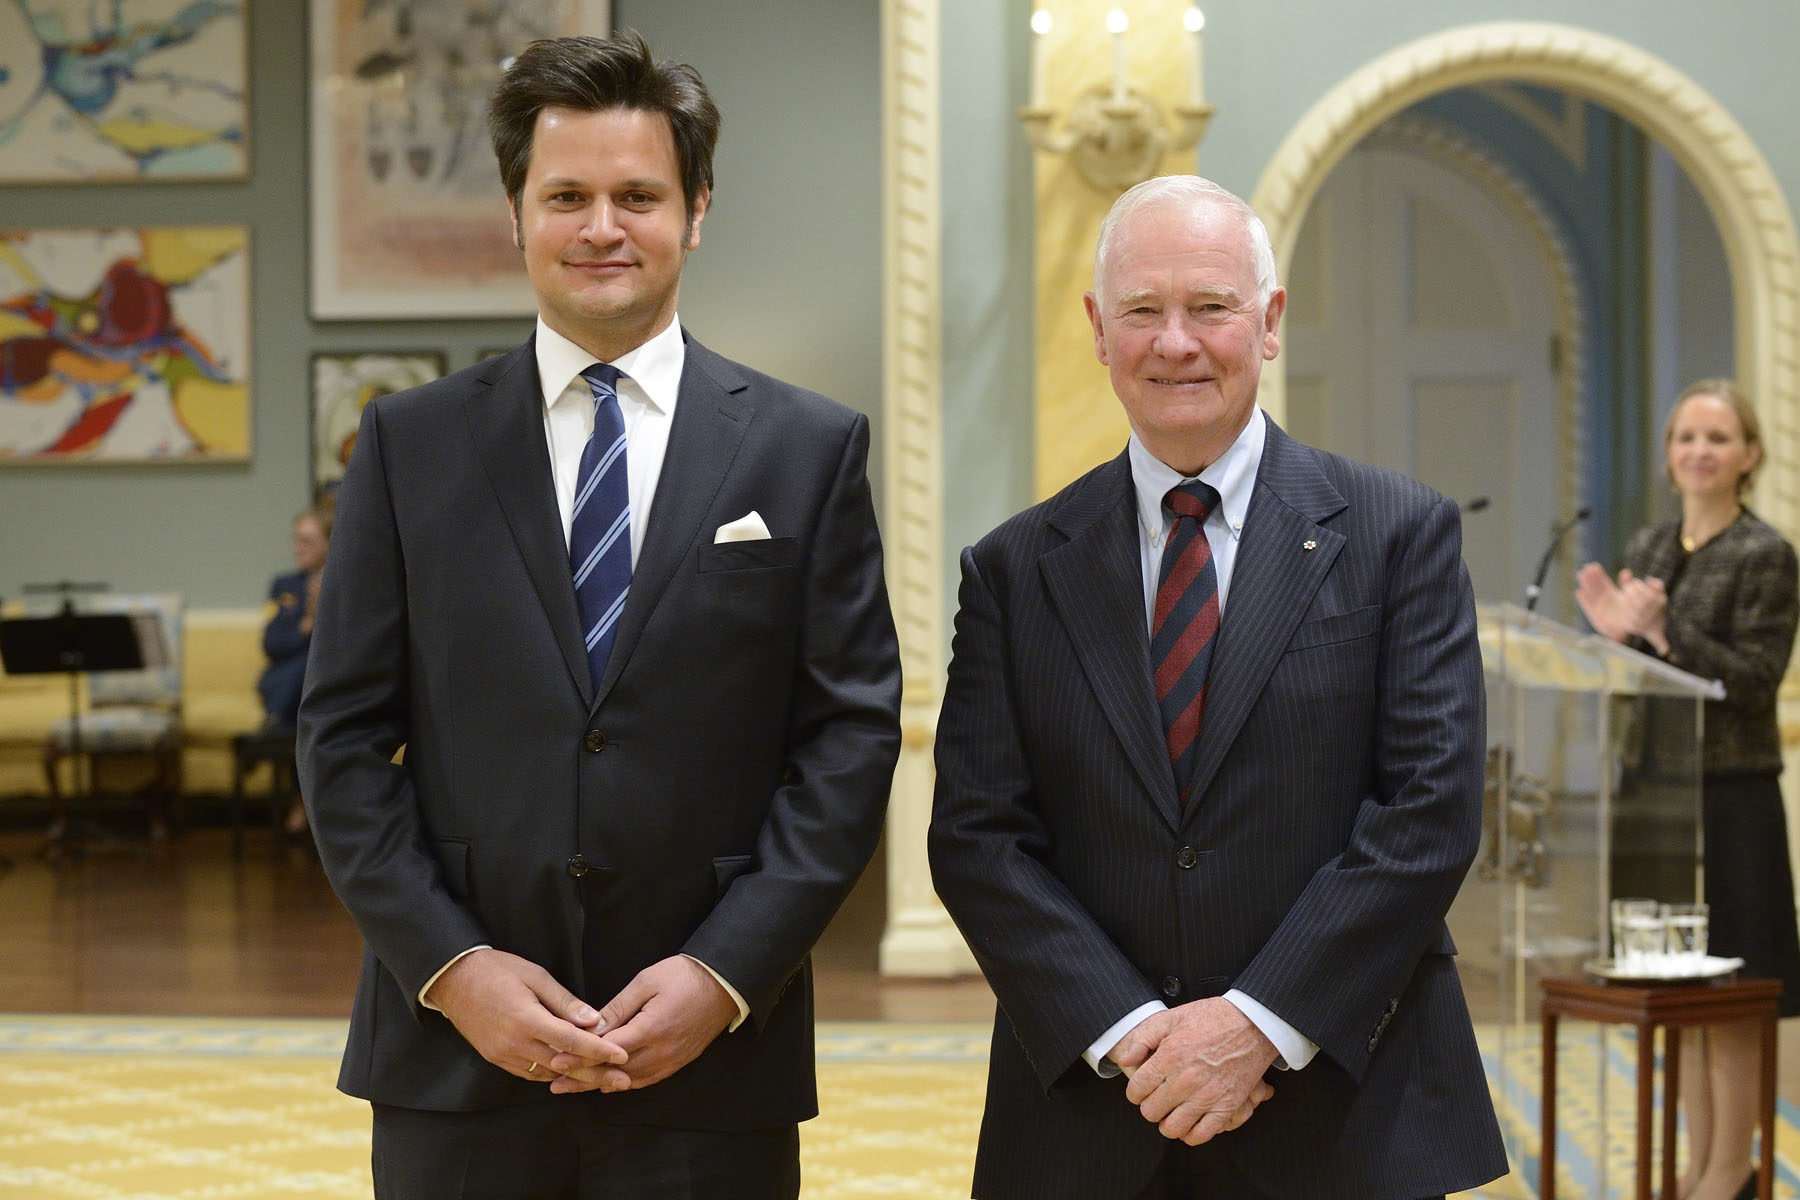 During a ceremony at Rideau Hall, the Governor General welcomed foreign heads of mission to this country. He first received the letters of credence of His Excellency Bálint Ódor, Ambassador of Hungary.